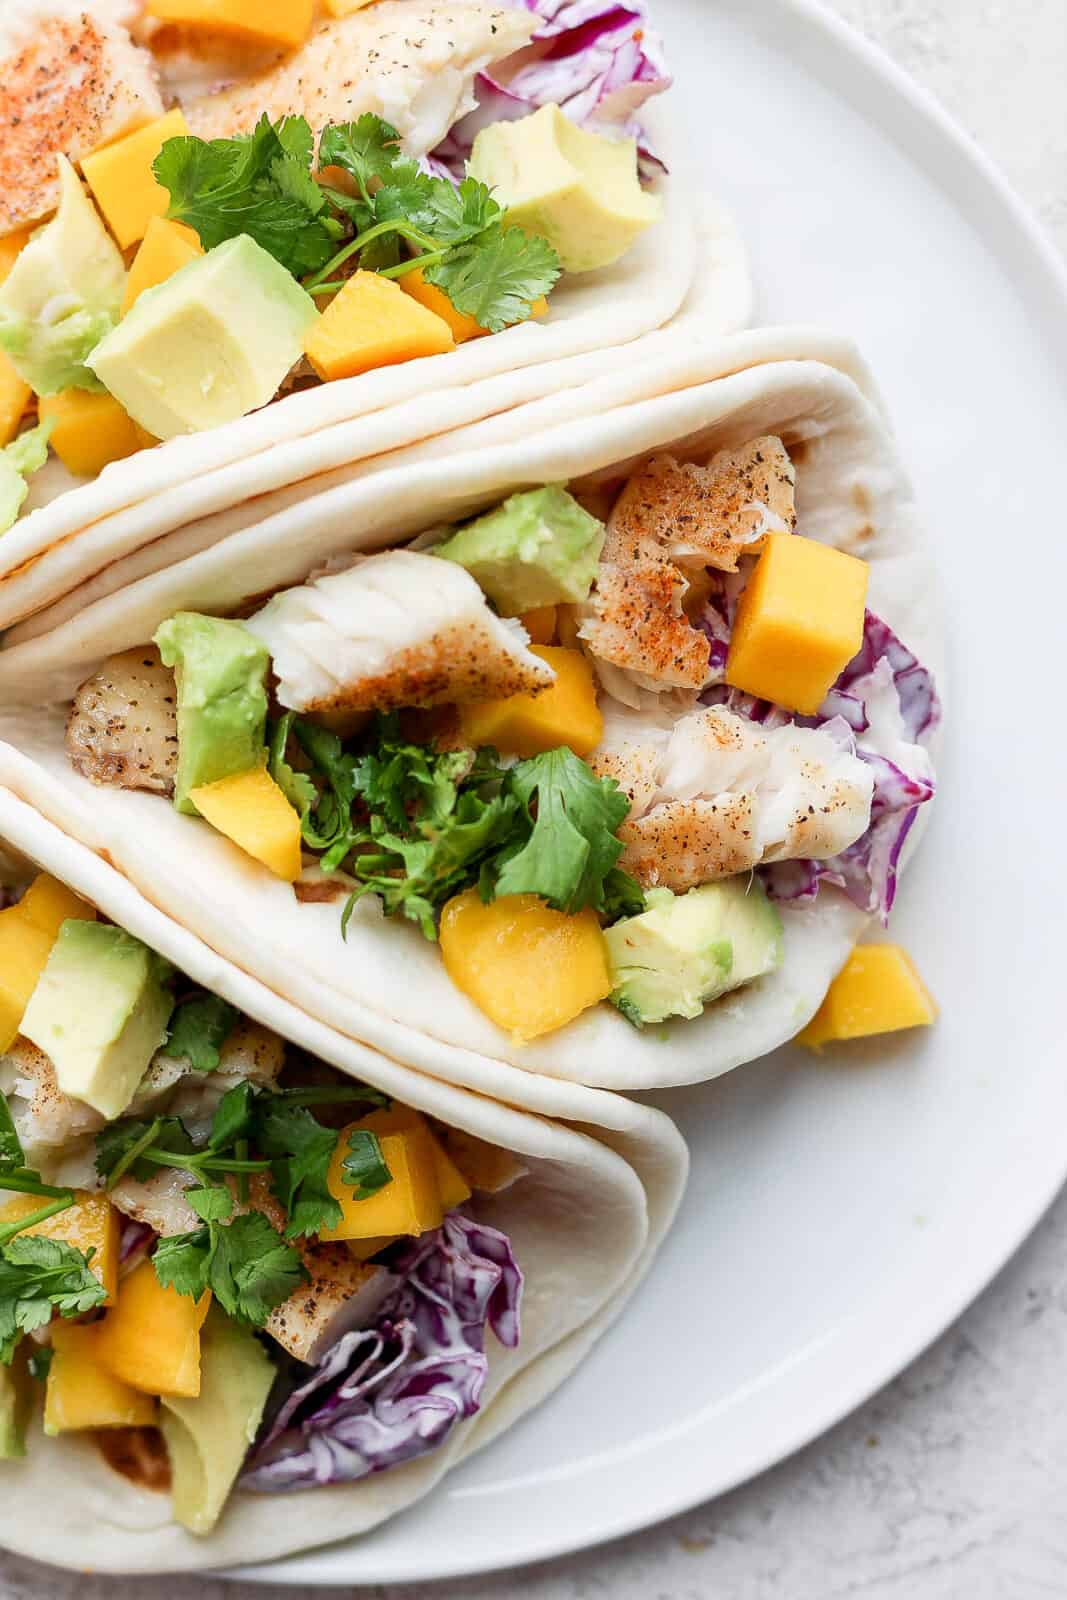 Three tilapia fish tacos with mango and avocado on a white plate.